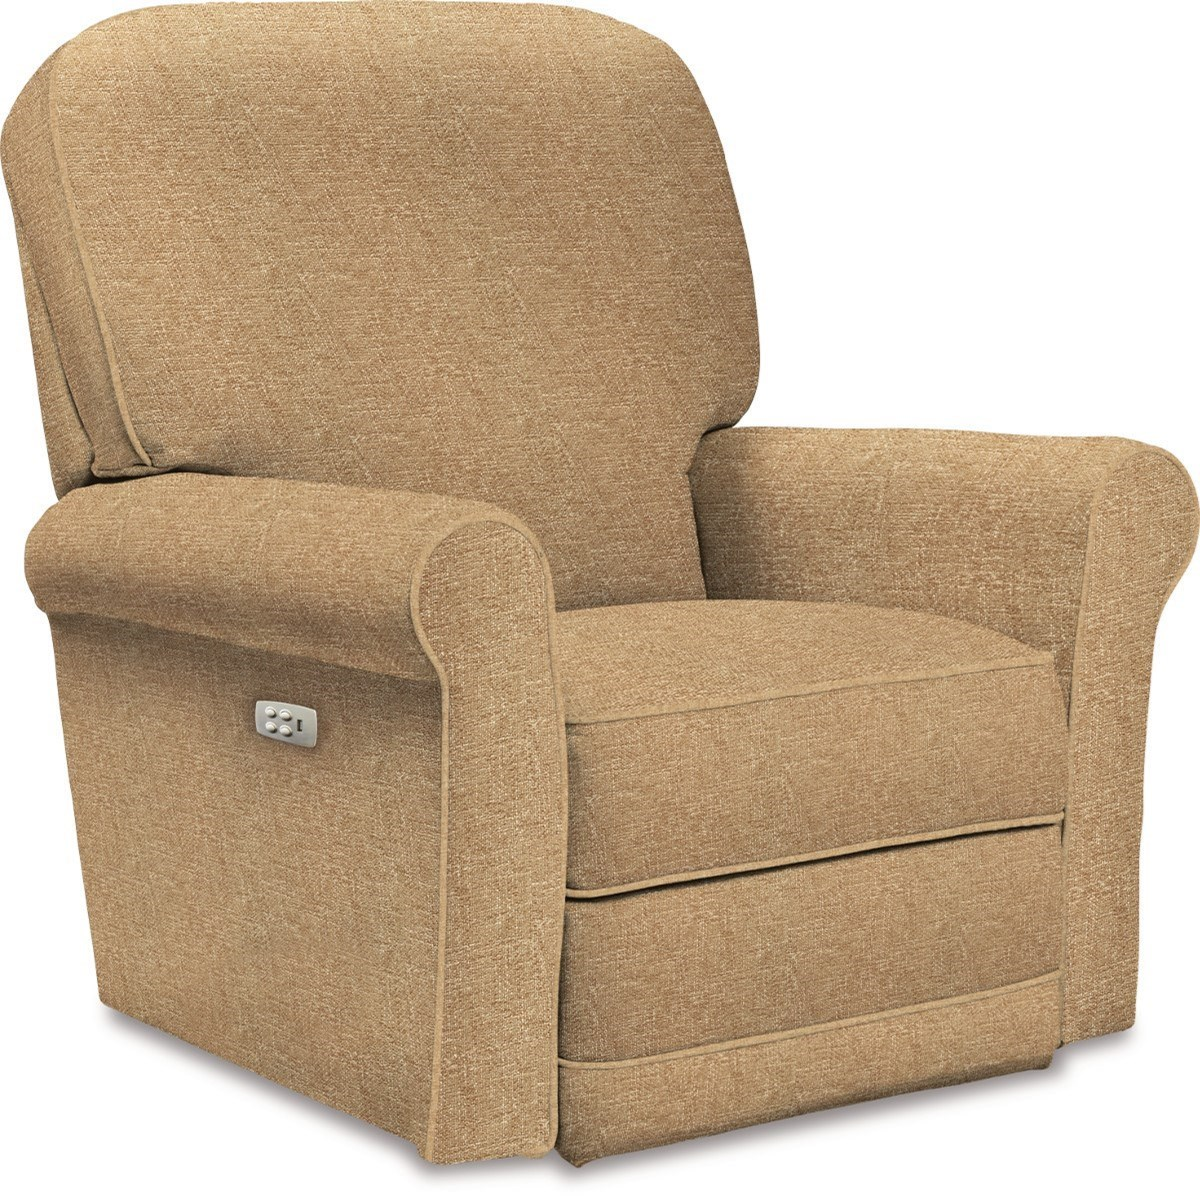 Addison Power-Recline-XR RECLINA-ROCKER® Recliner by La-Z-Boy at Sparks HomeStore